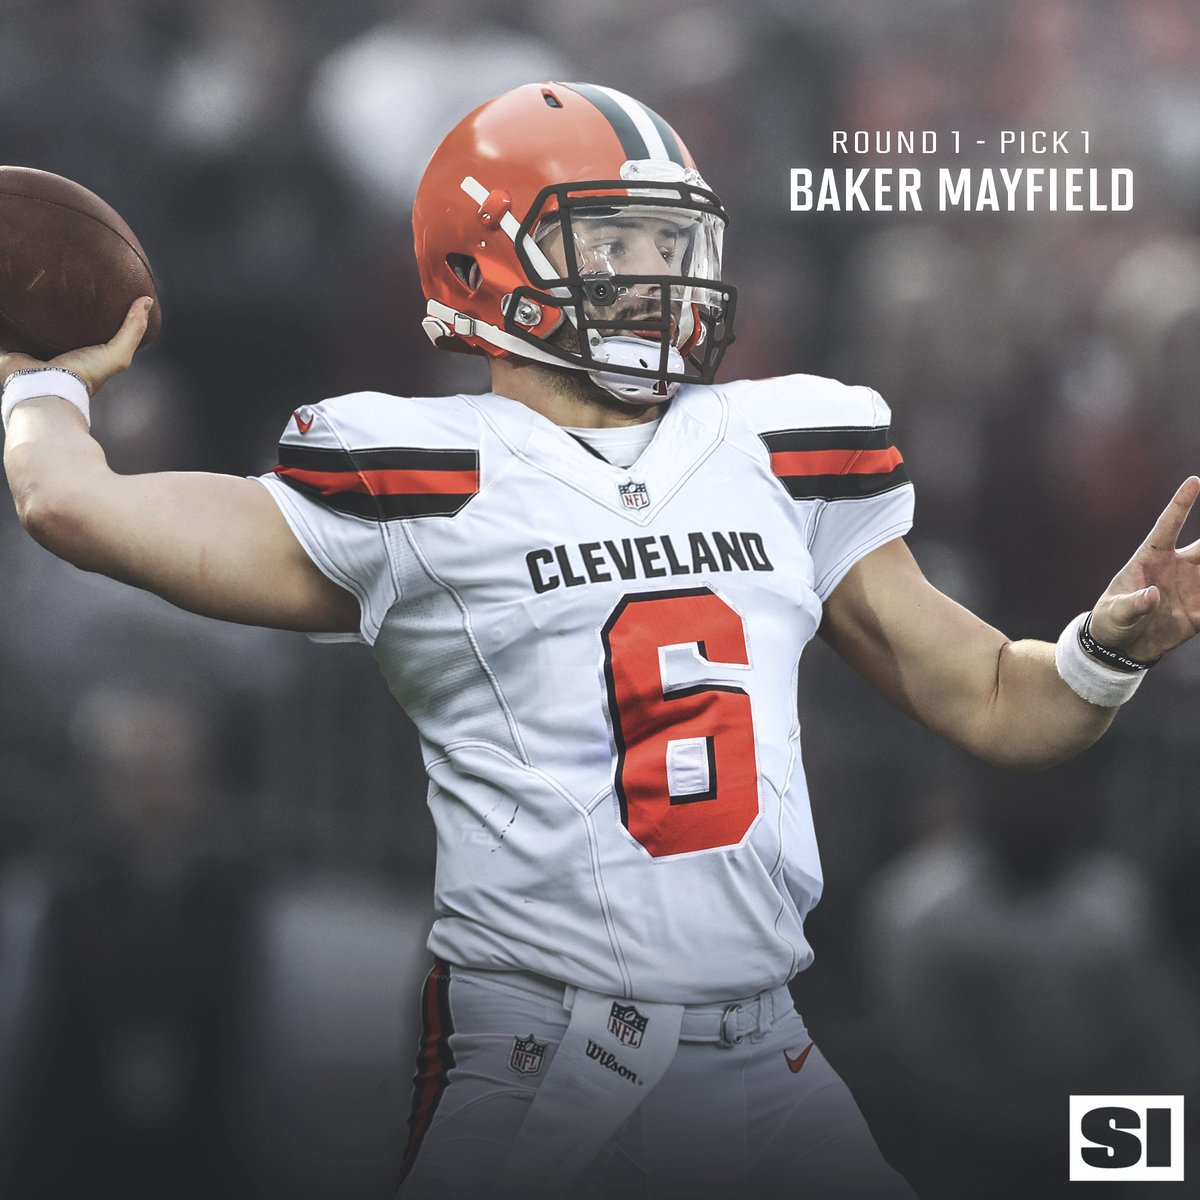 baker mayfield playoff jersey